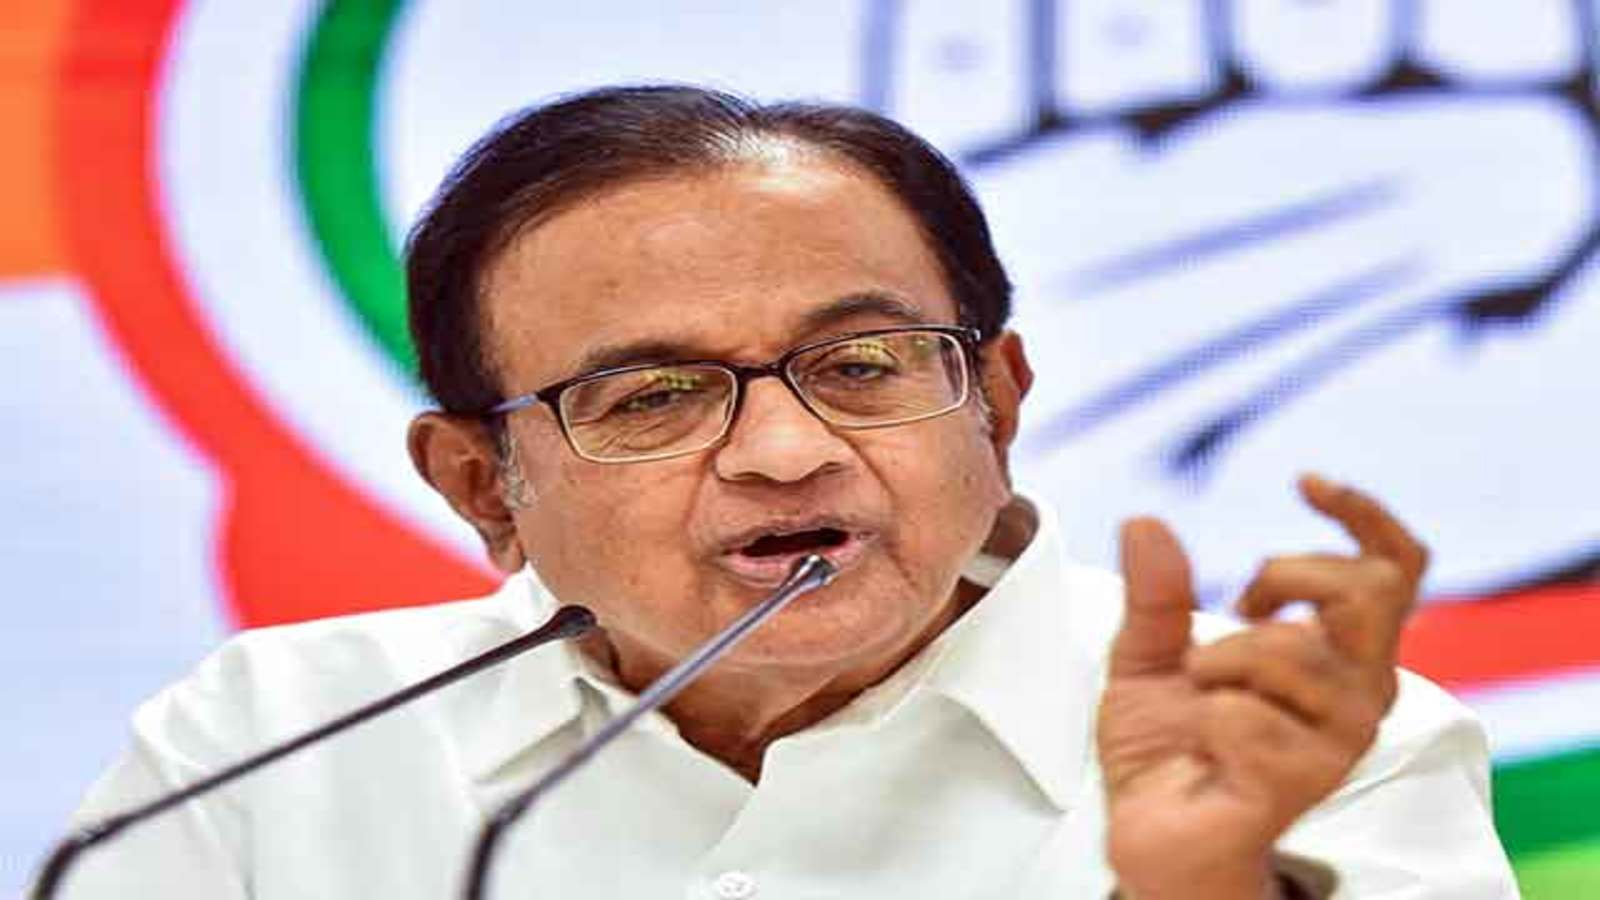 budget-2019-bereft-of-any-reforms-is-an-insipid-budget-p-chidambaram